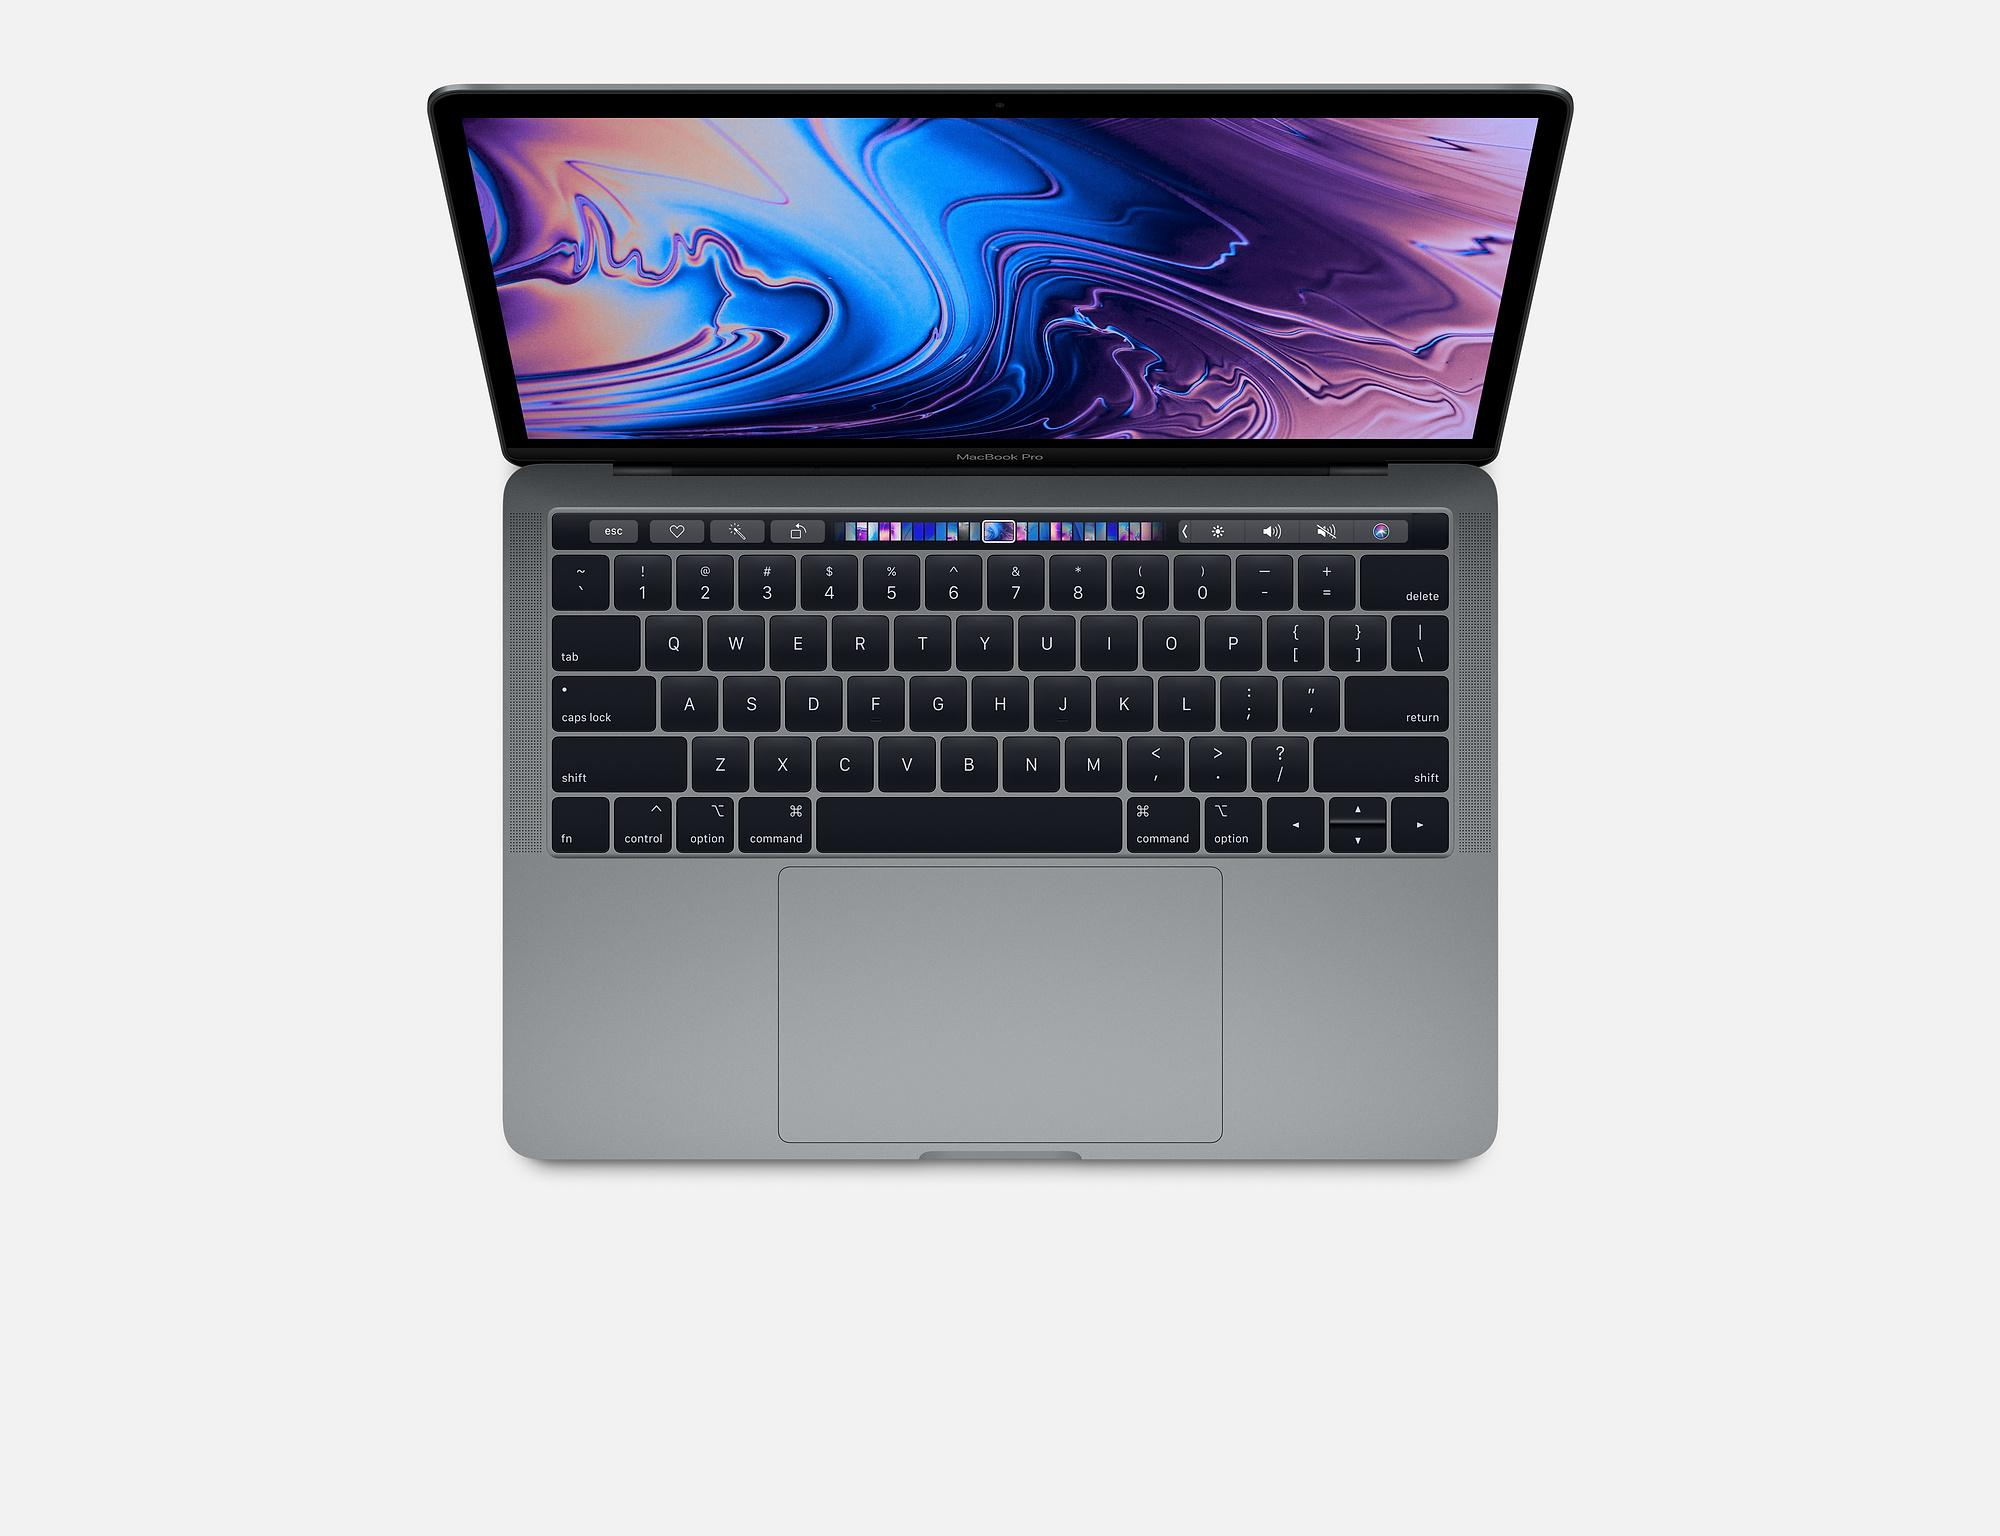 Apple MacBook Pro 15-inch with Touch Bar: 2.2GHz 6-core 8th-generation IntelCorei7 processor, 256GB (2018)